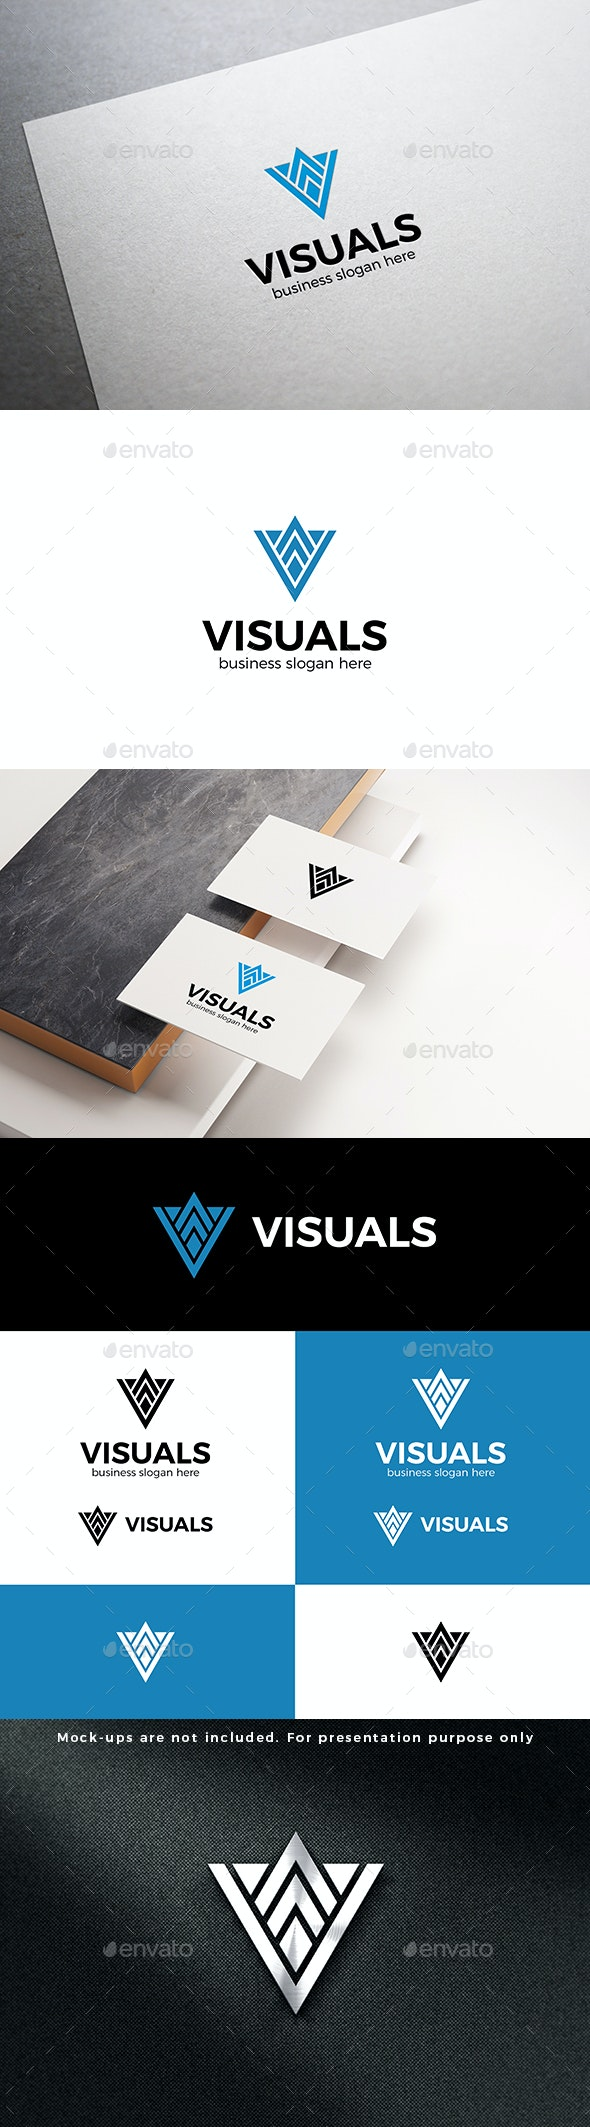 Abstract Geometric Triangle Logo Letter V - Abstract Logo Templates